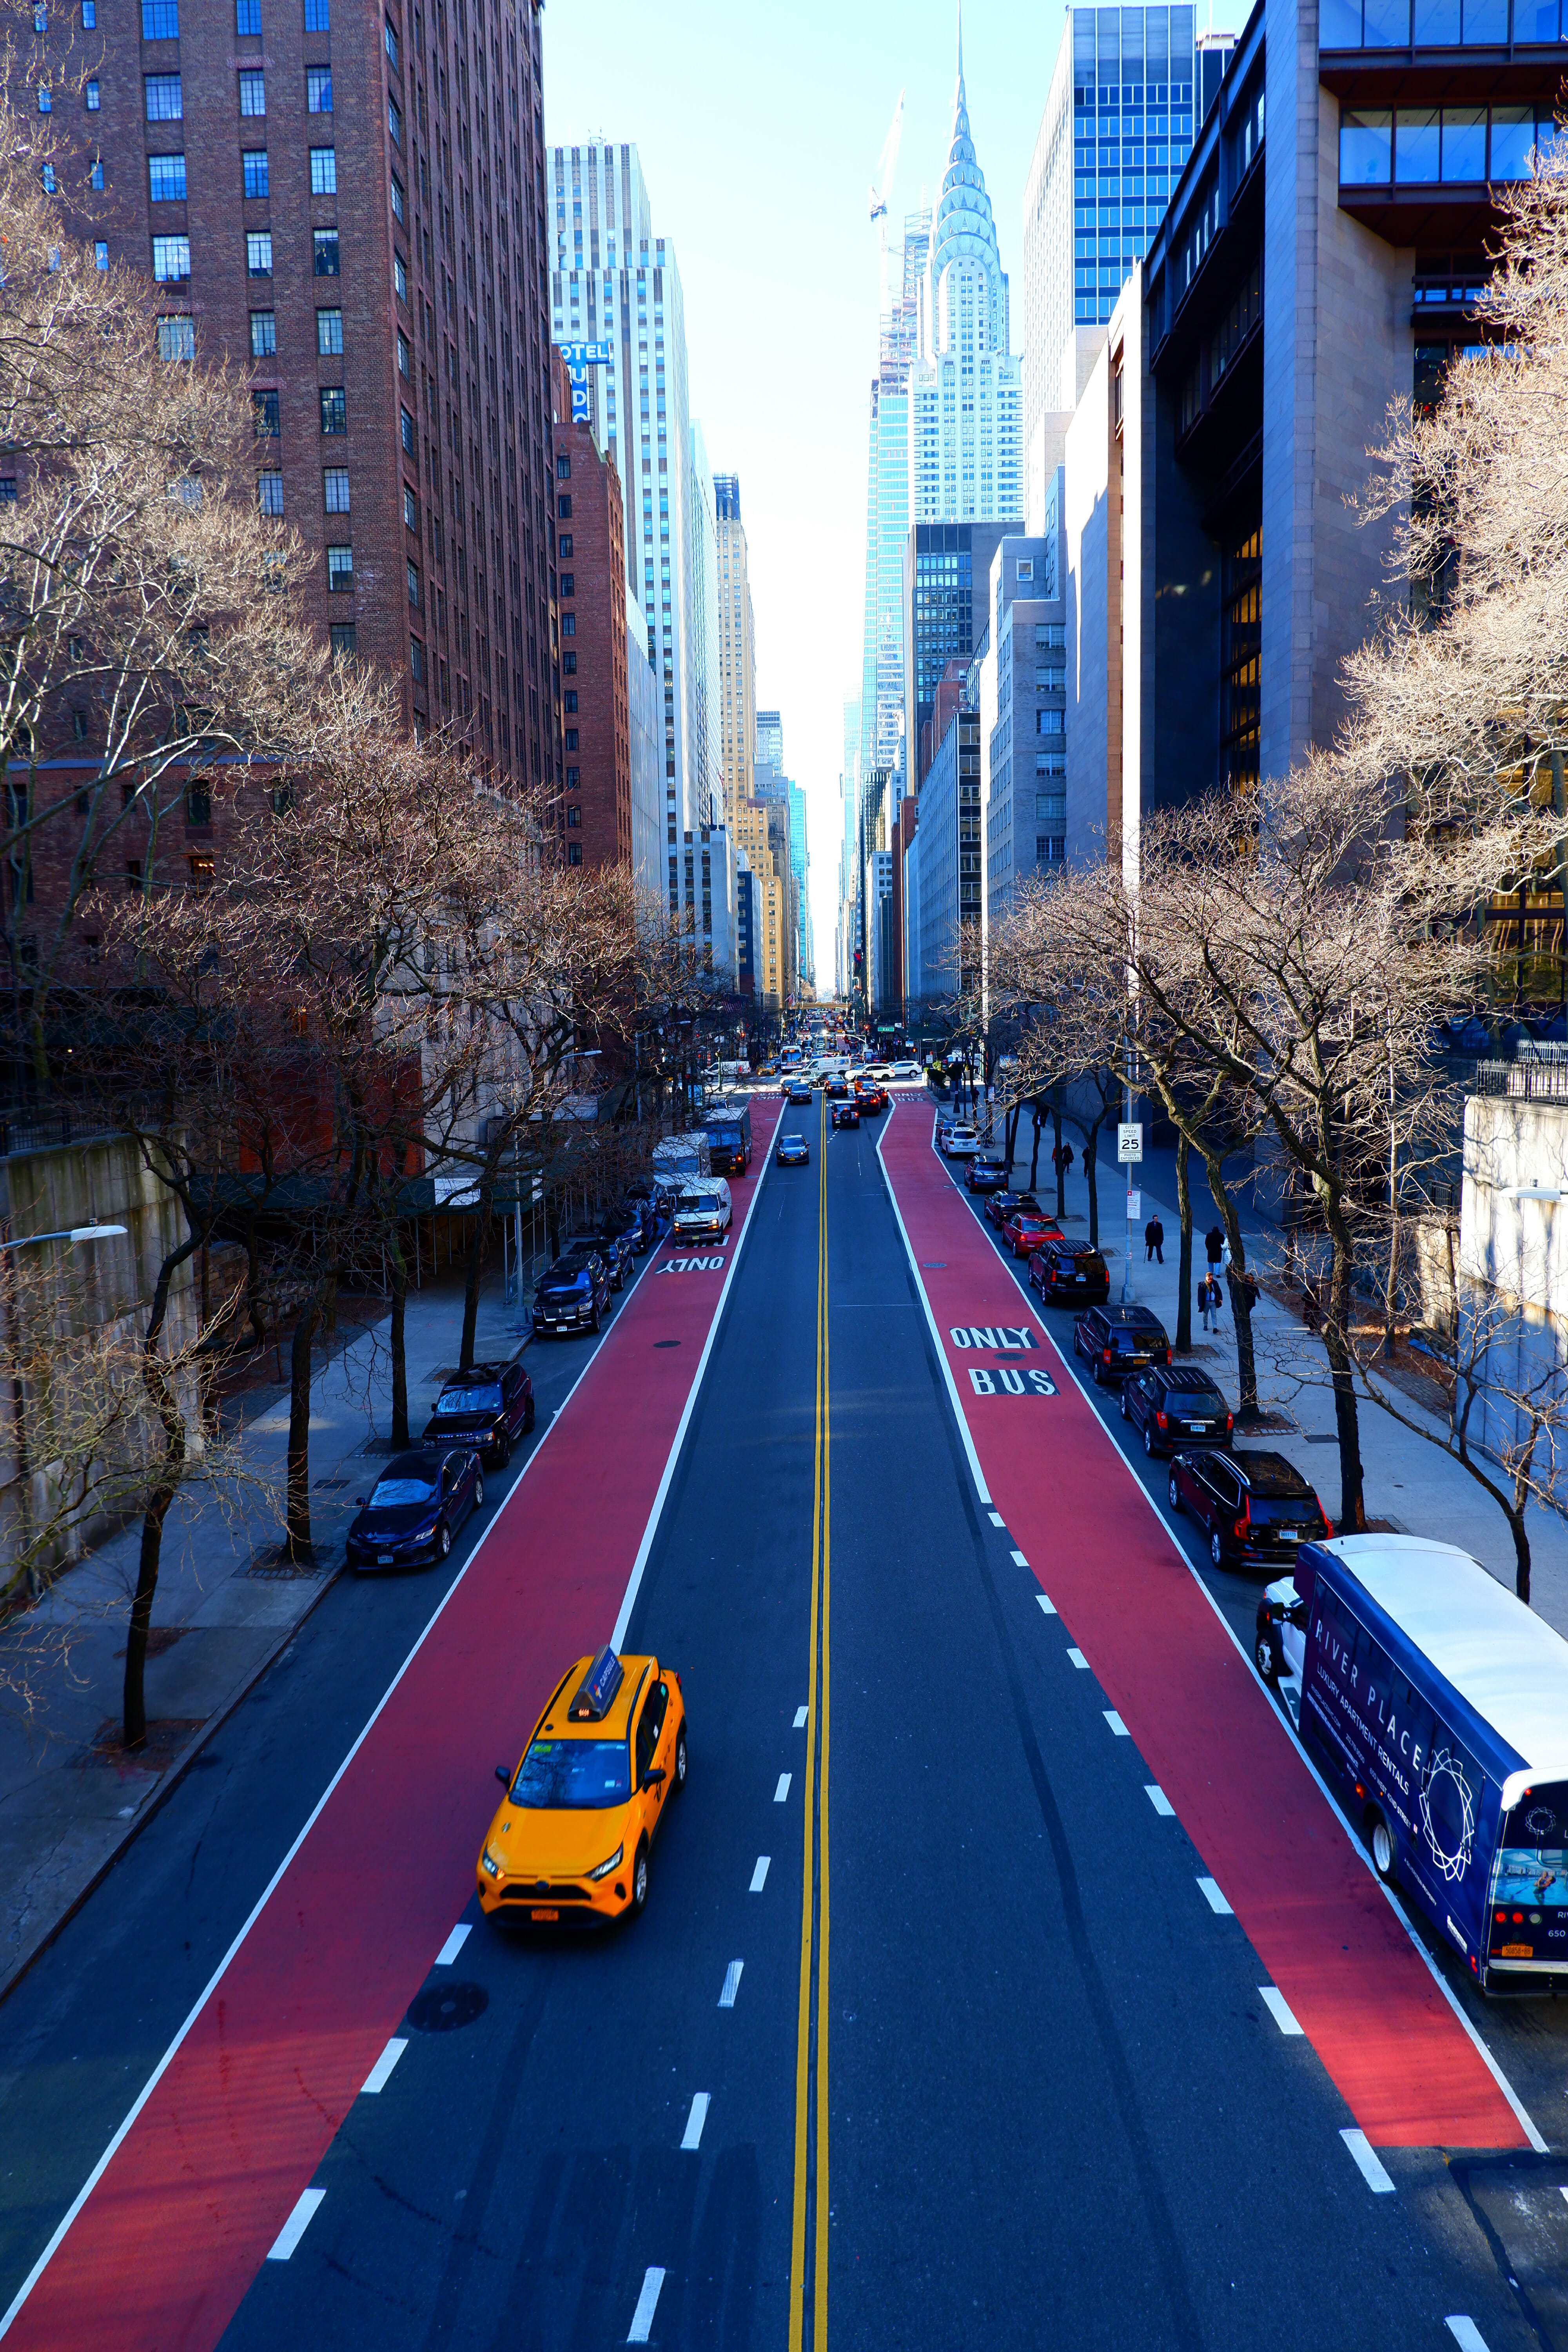 View of 42nd Street from Tudor City High Quality Wallpaper